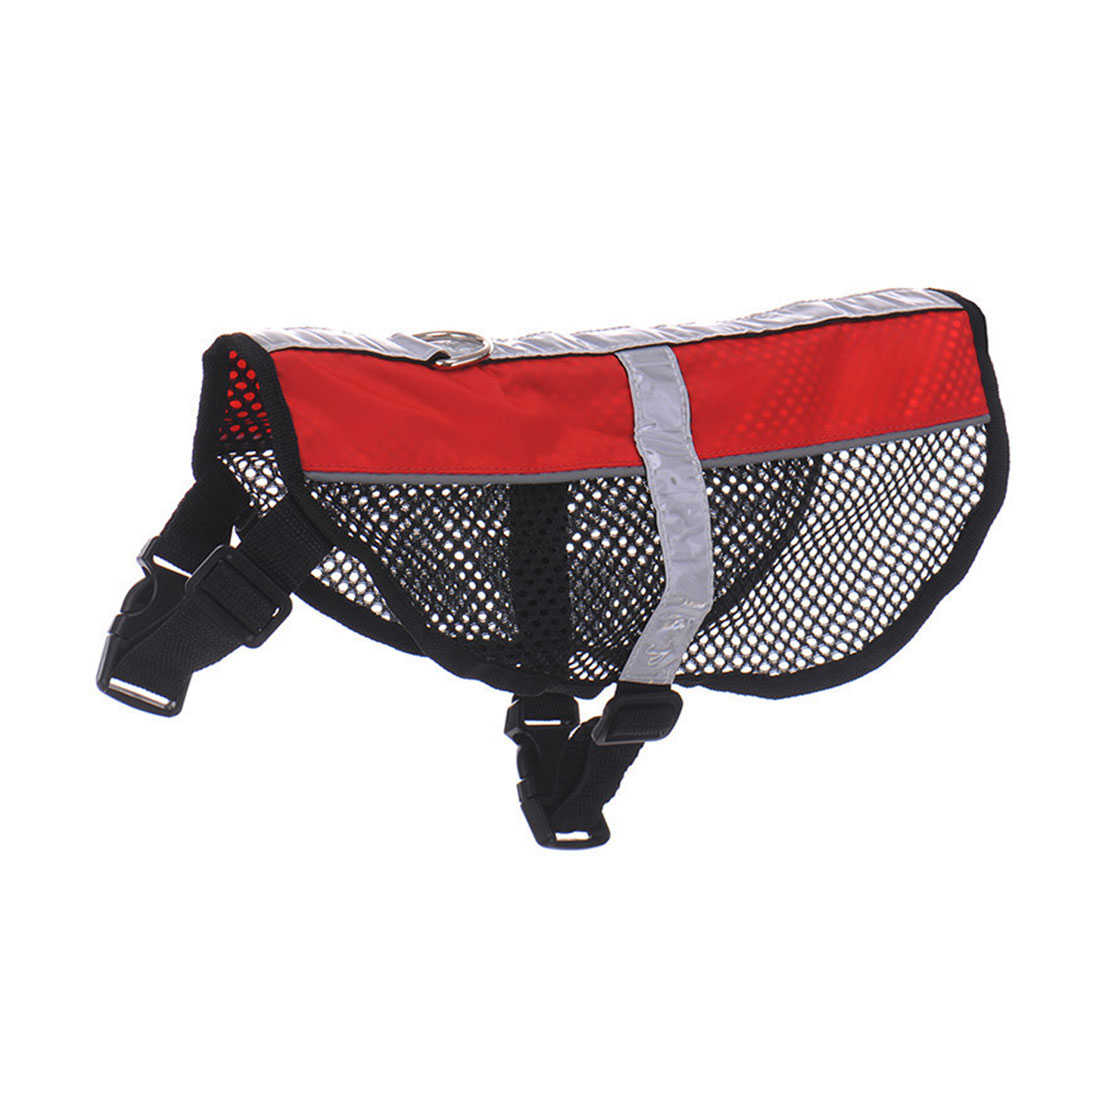 Service Dog Mesh Vest Harness Cool Comfort Nylon High Visibility Safety Jacket Red M